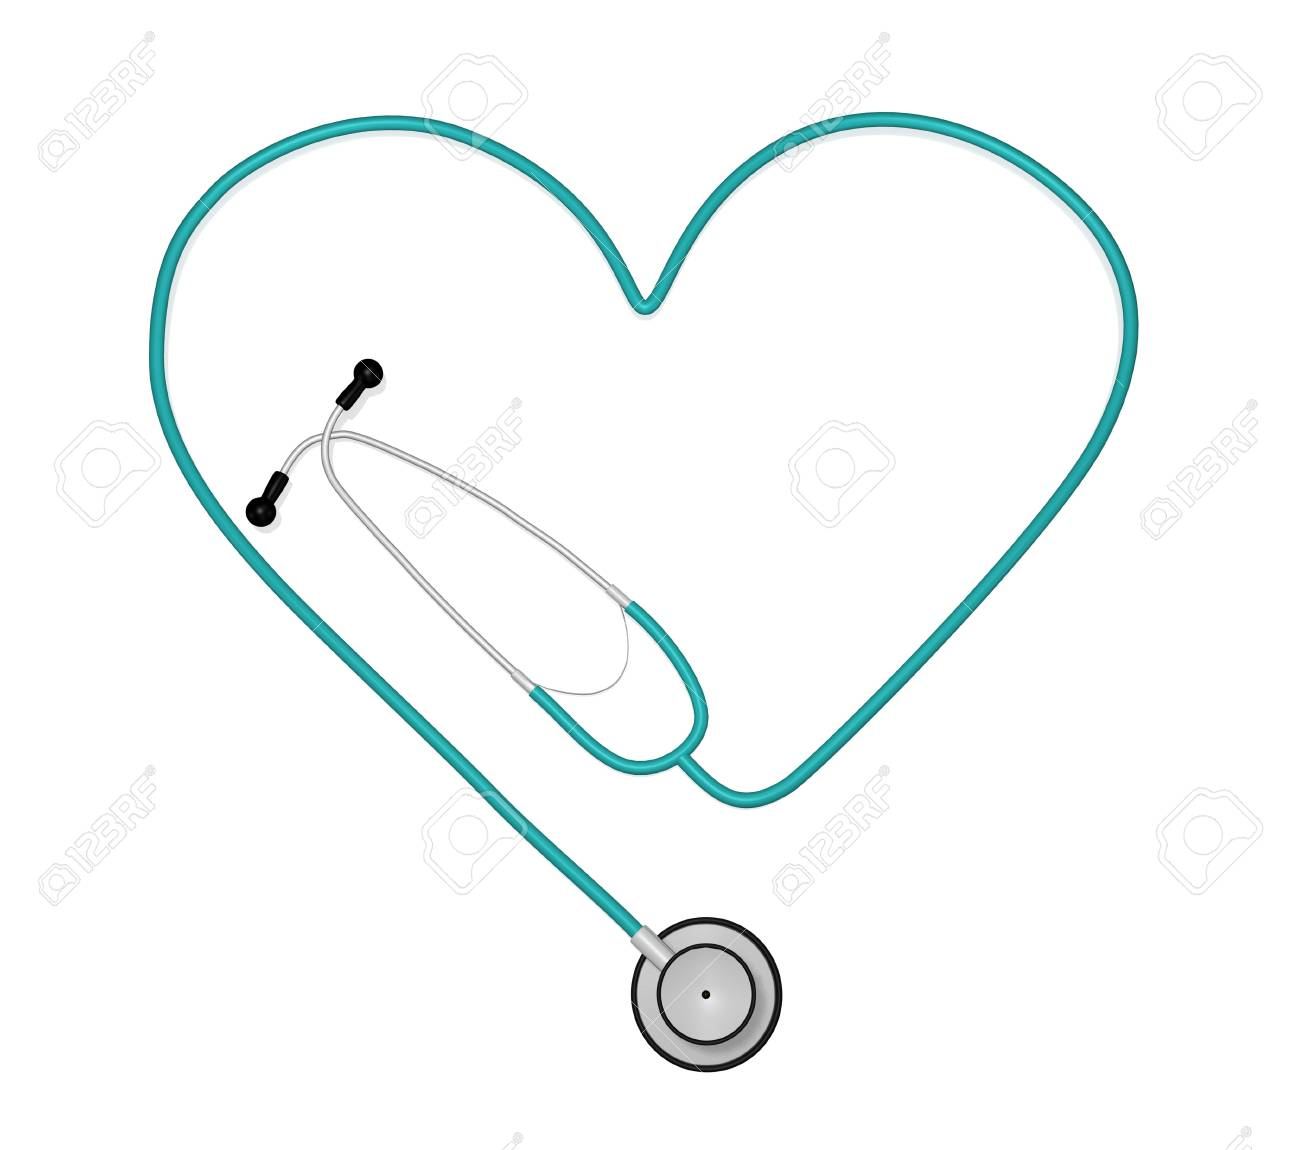 Image of a stethoscope in the shape of a heart isolated on a white background. Stock Photo - 7141551